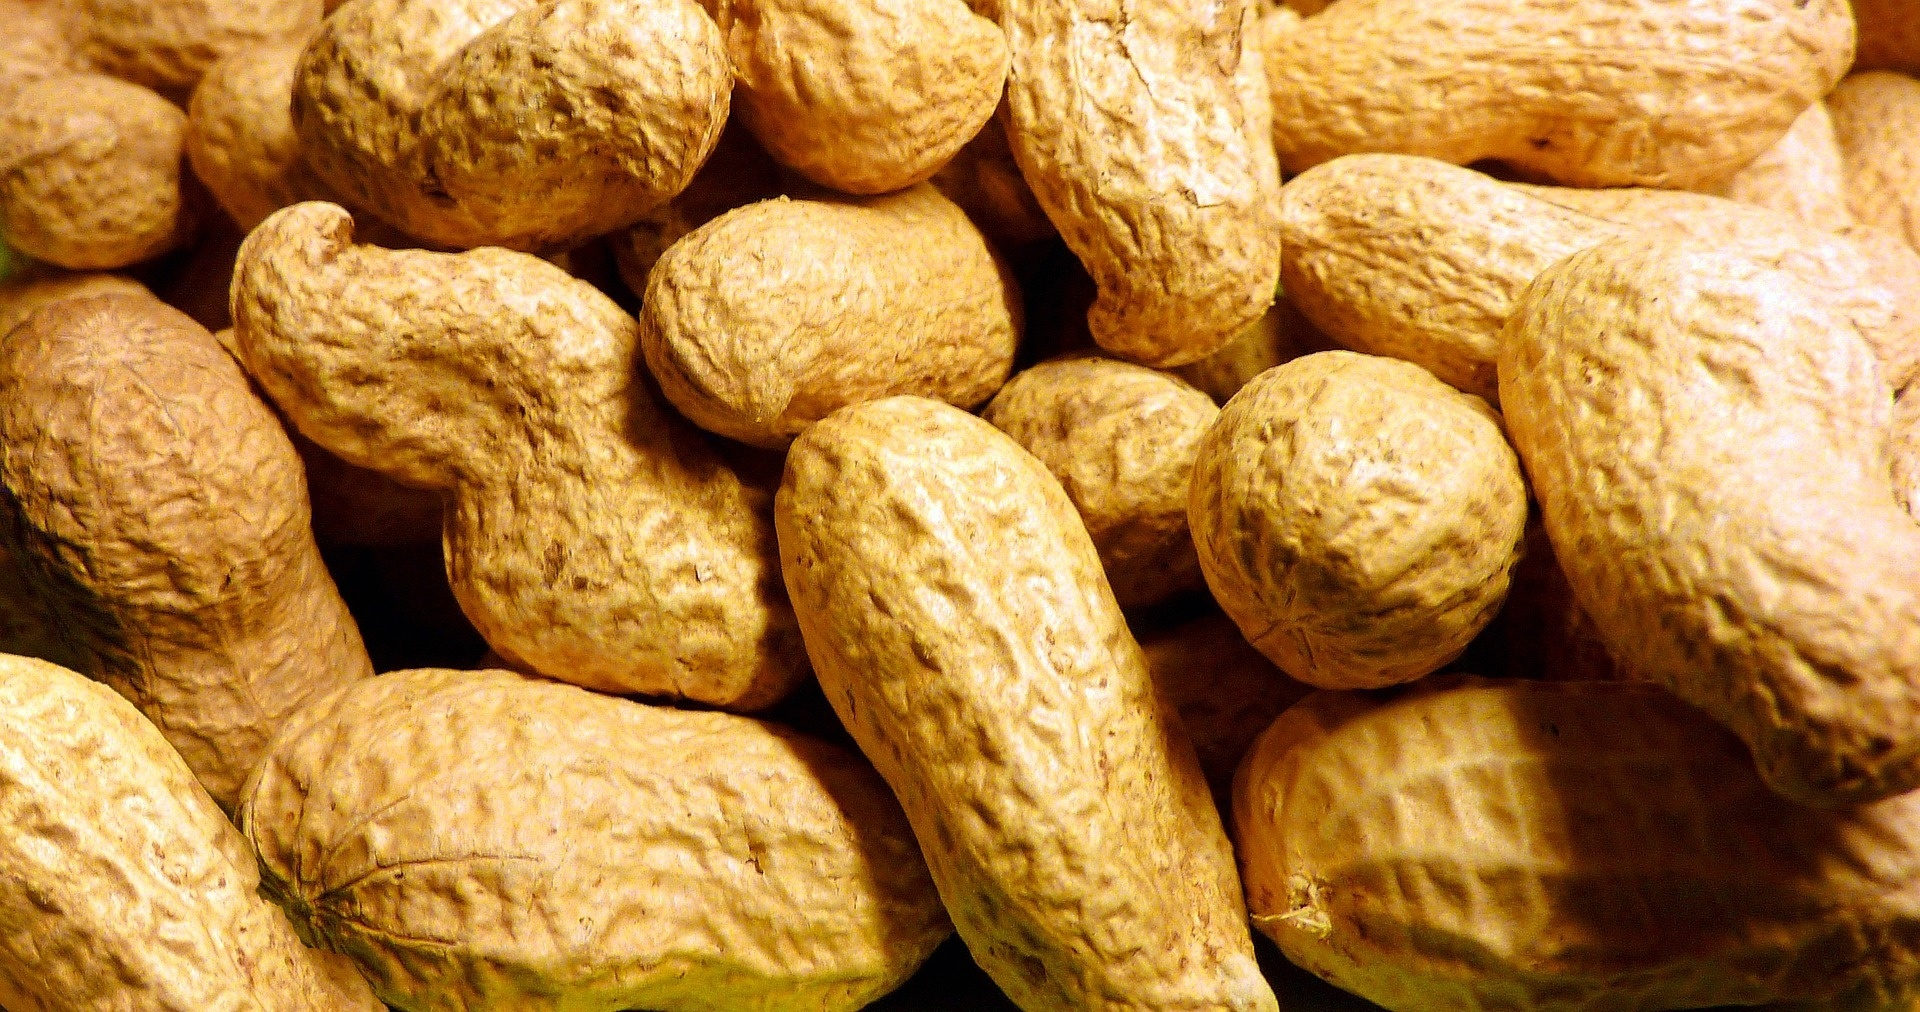 Study: New peanut allergy treatment could save kids  lives